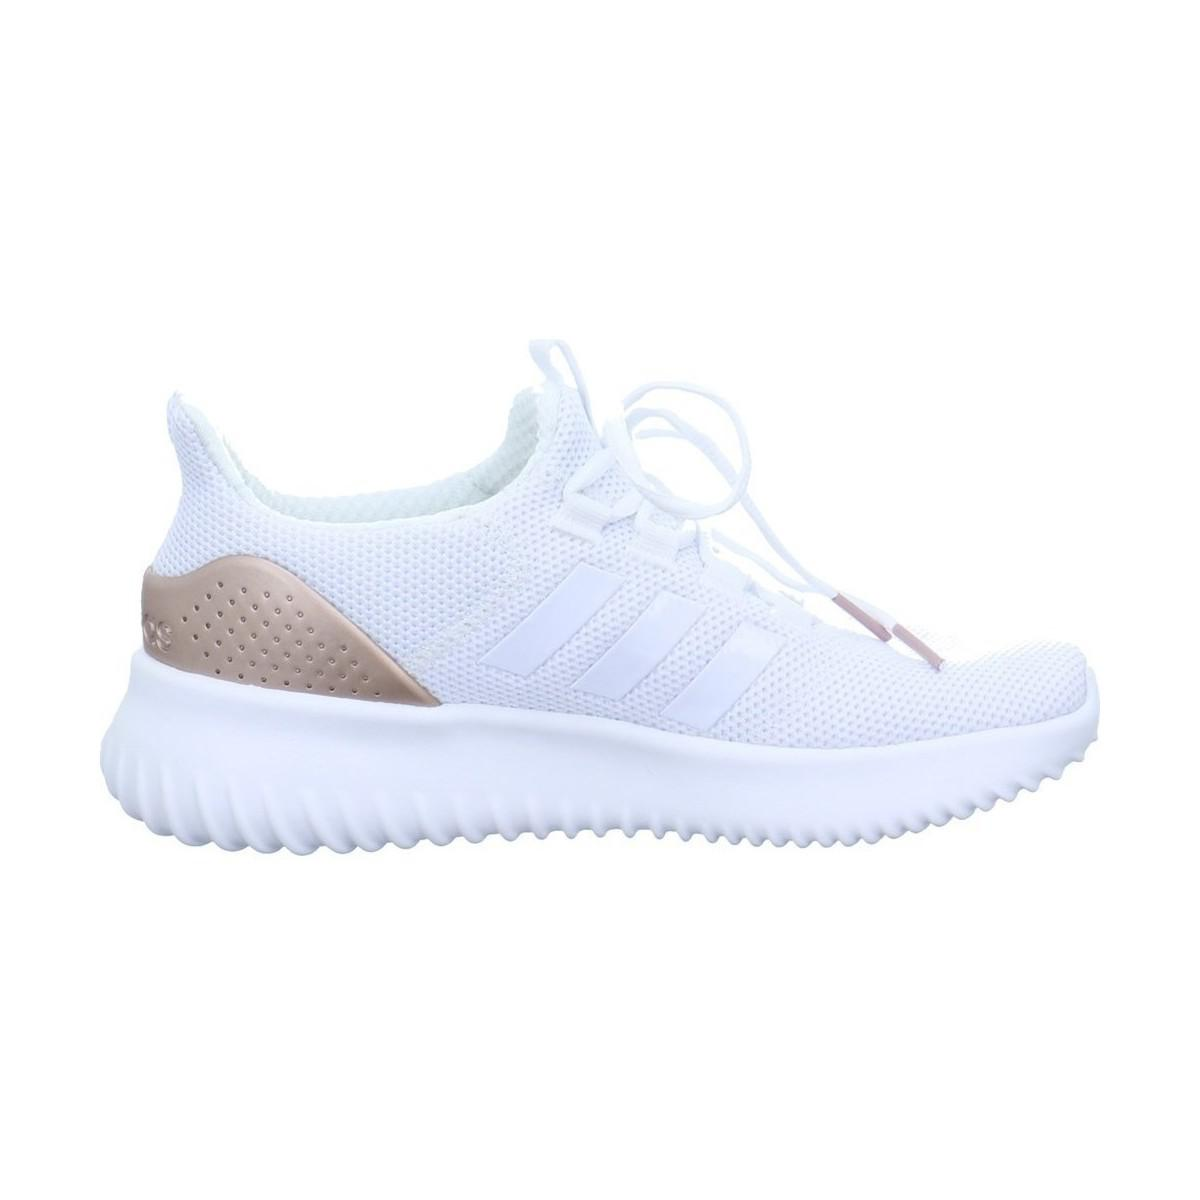 official photos 562e5 c614c Adidas Cloudfoam Ultimate Womens Shoes (trainers) In White i